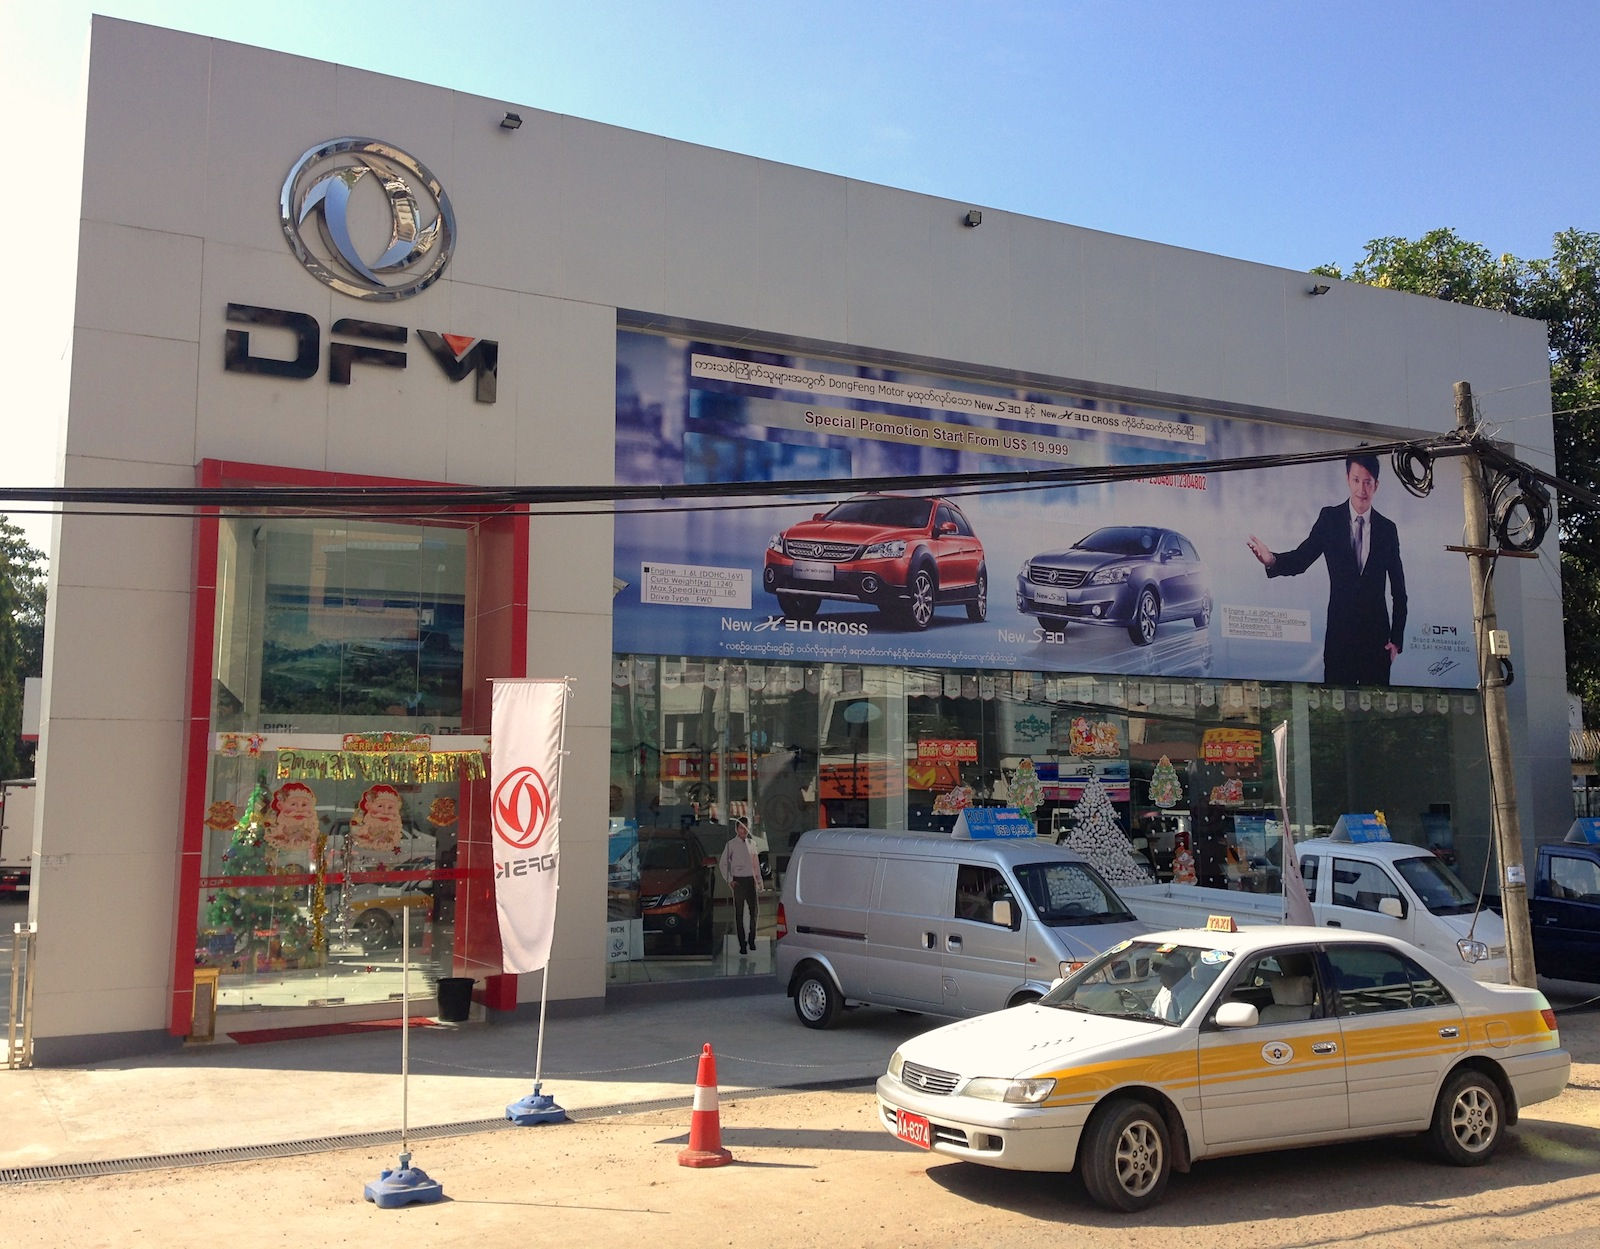 cars news 10: myanmar 2014 photo reports: the new car showrooms of